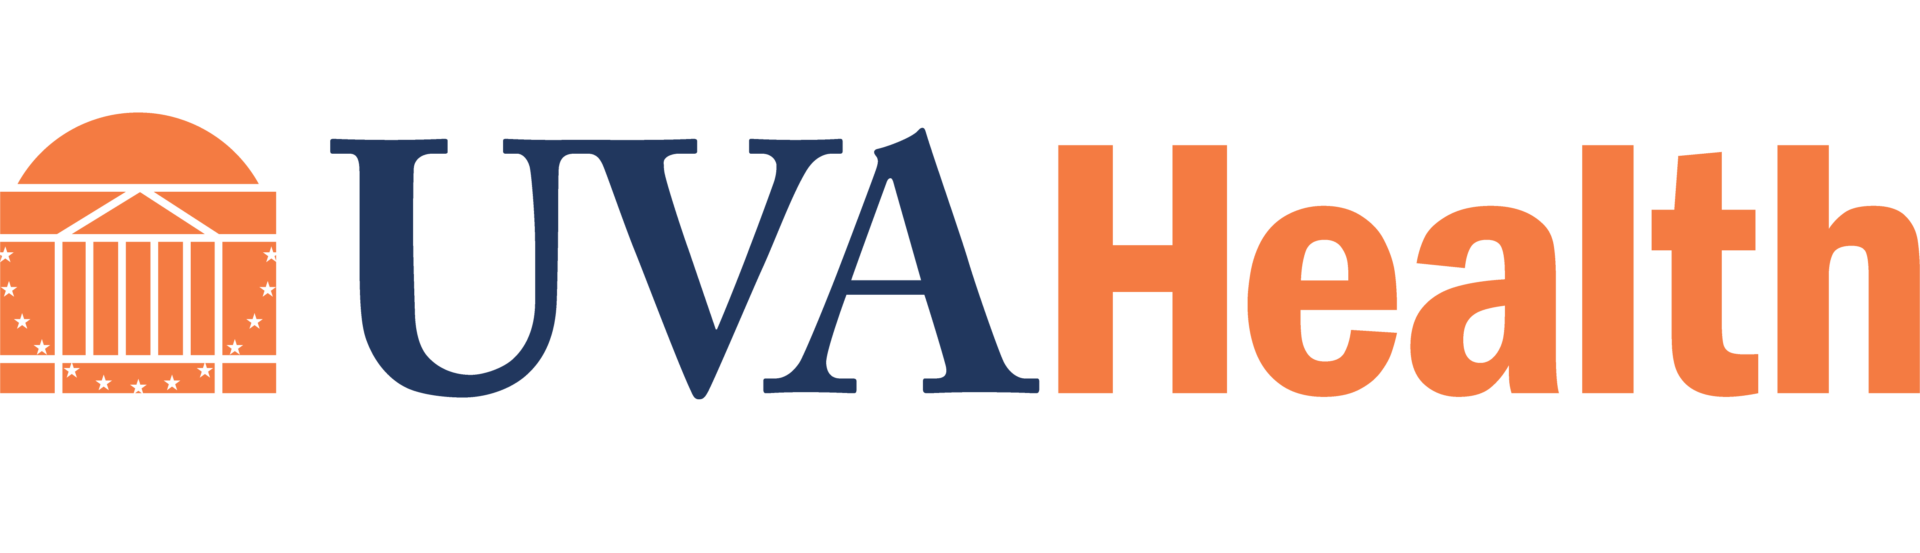 UVA Health is in an imaging center joint venture with OIA for Diagnostic Center Development